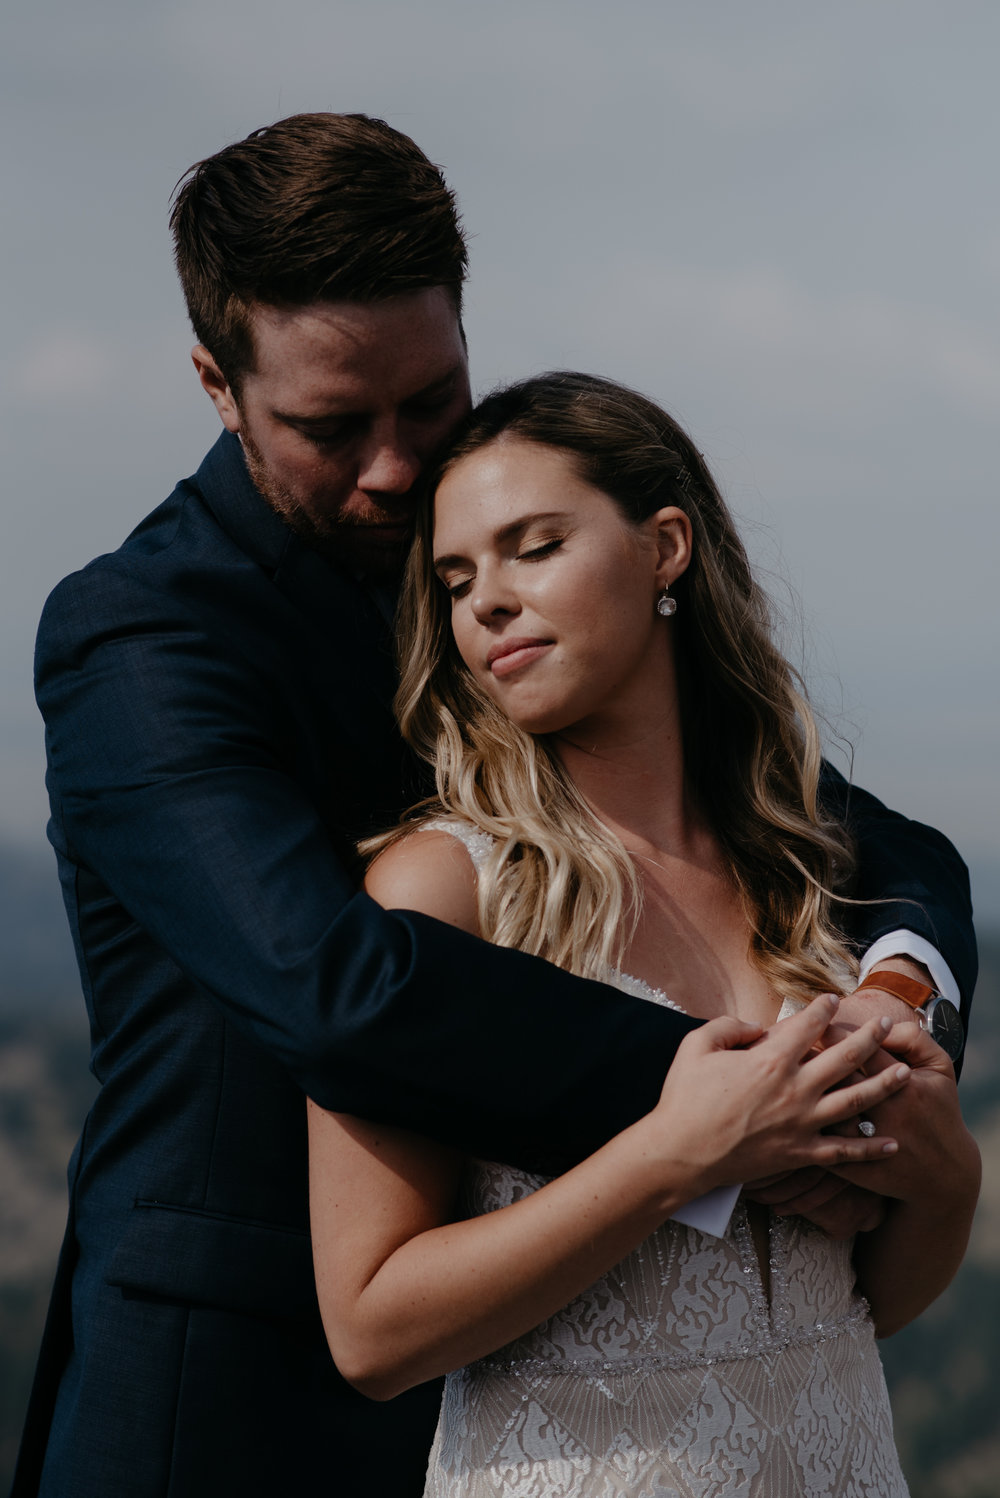 Boulder, Colorado wedding and elopement photographer.